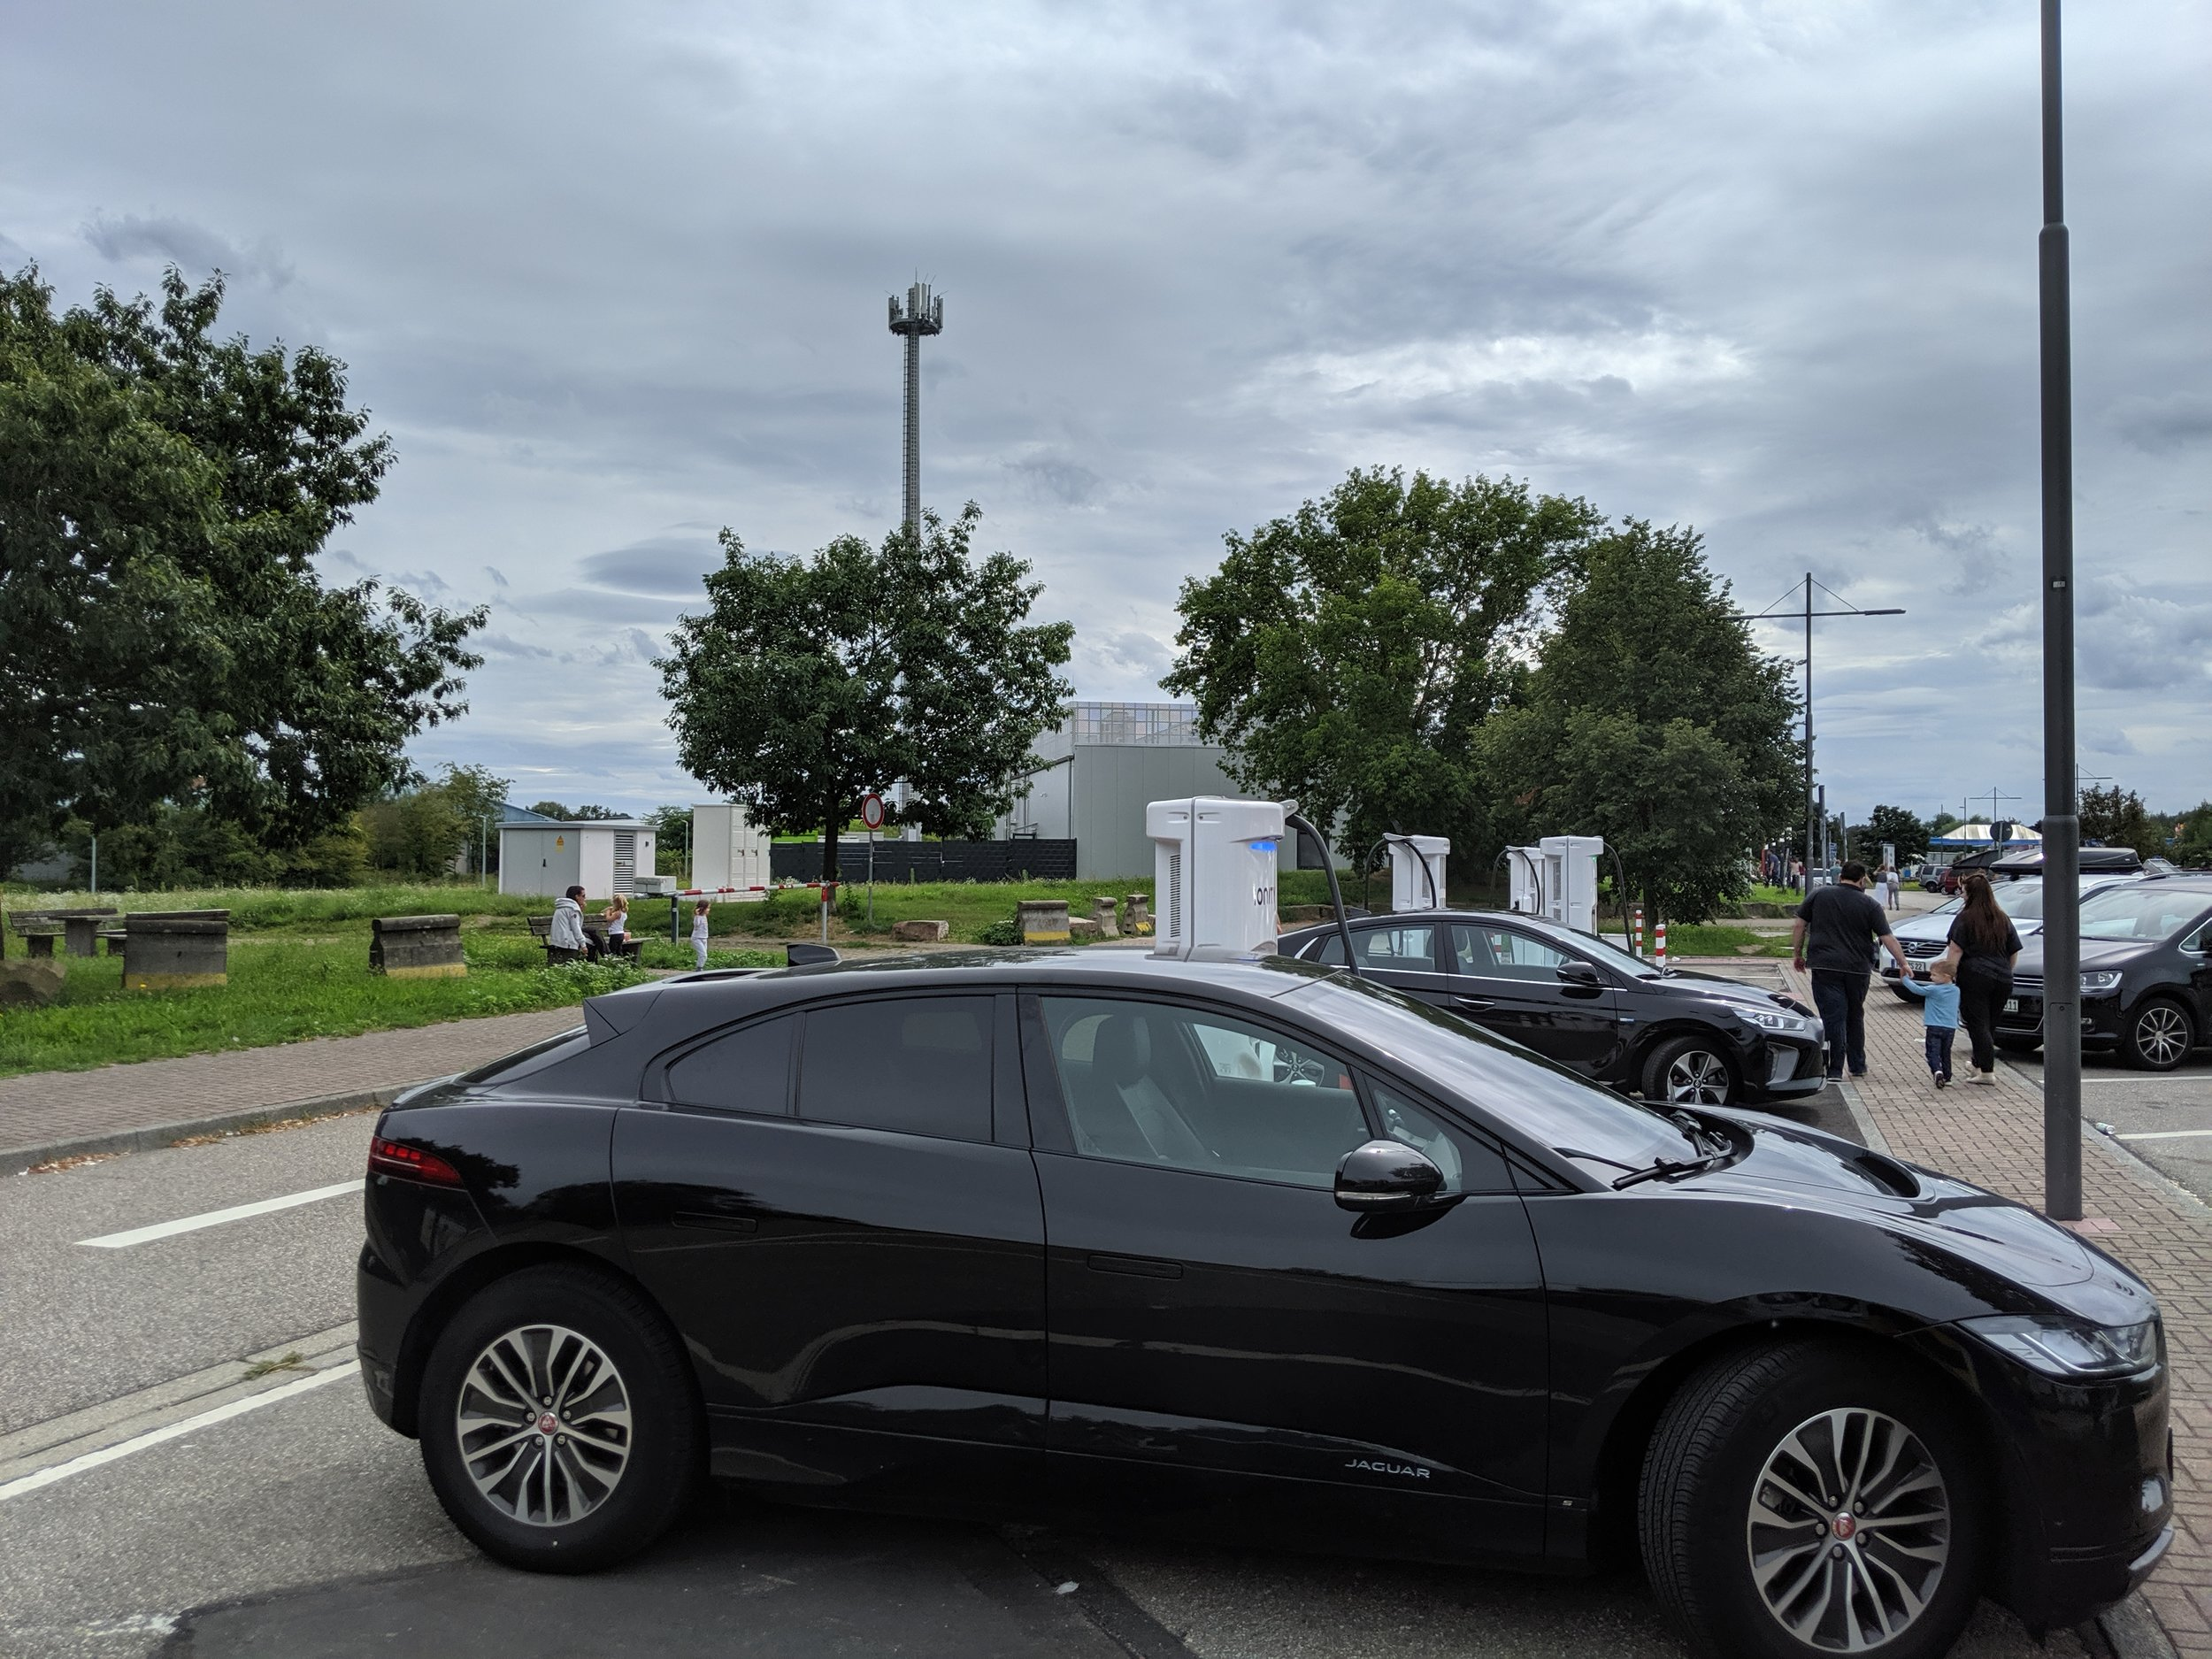 Ionity Bruchsal Ost . Another 25 minute top up. 33kWh in the pocket. On we go.